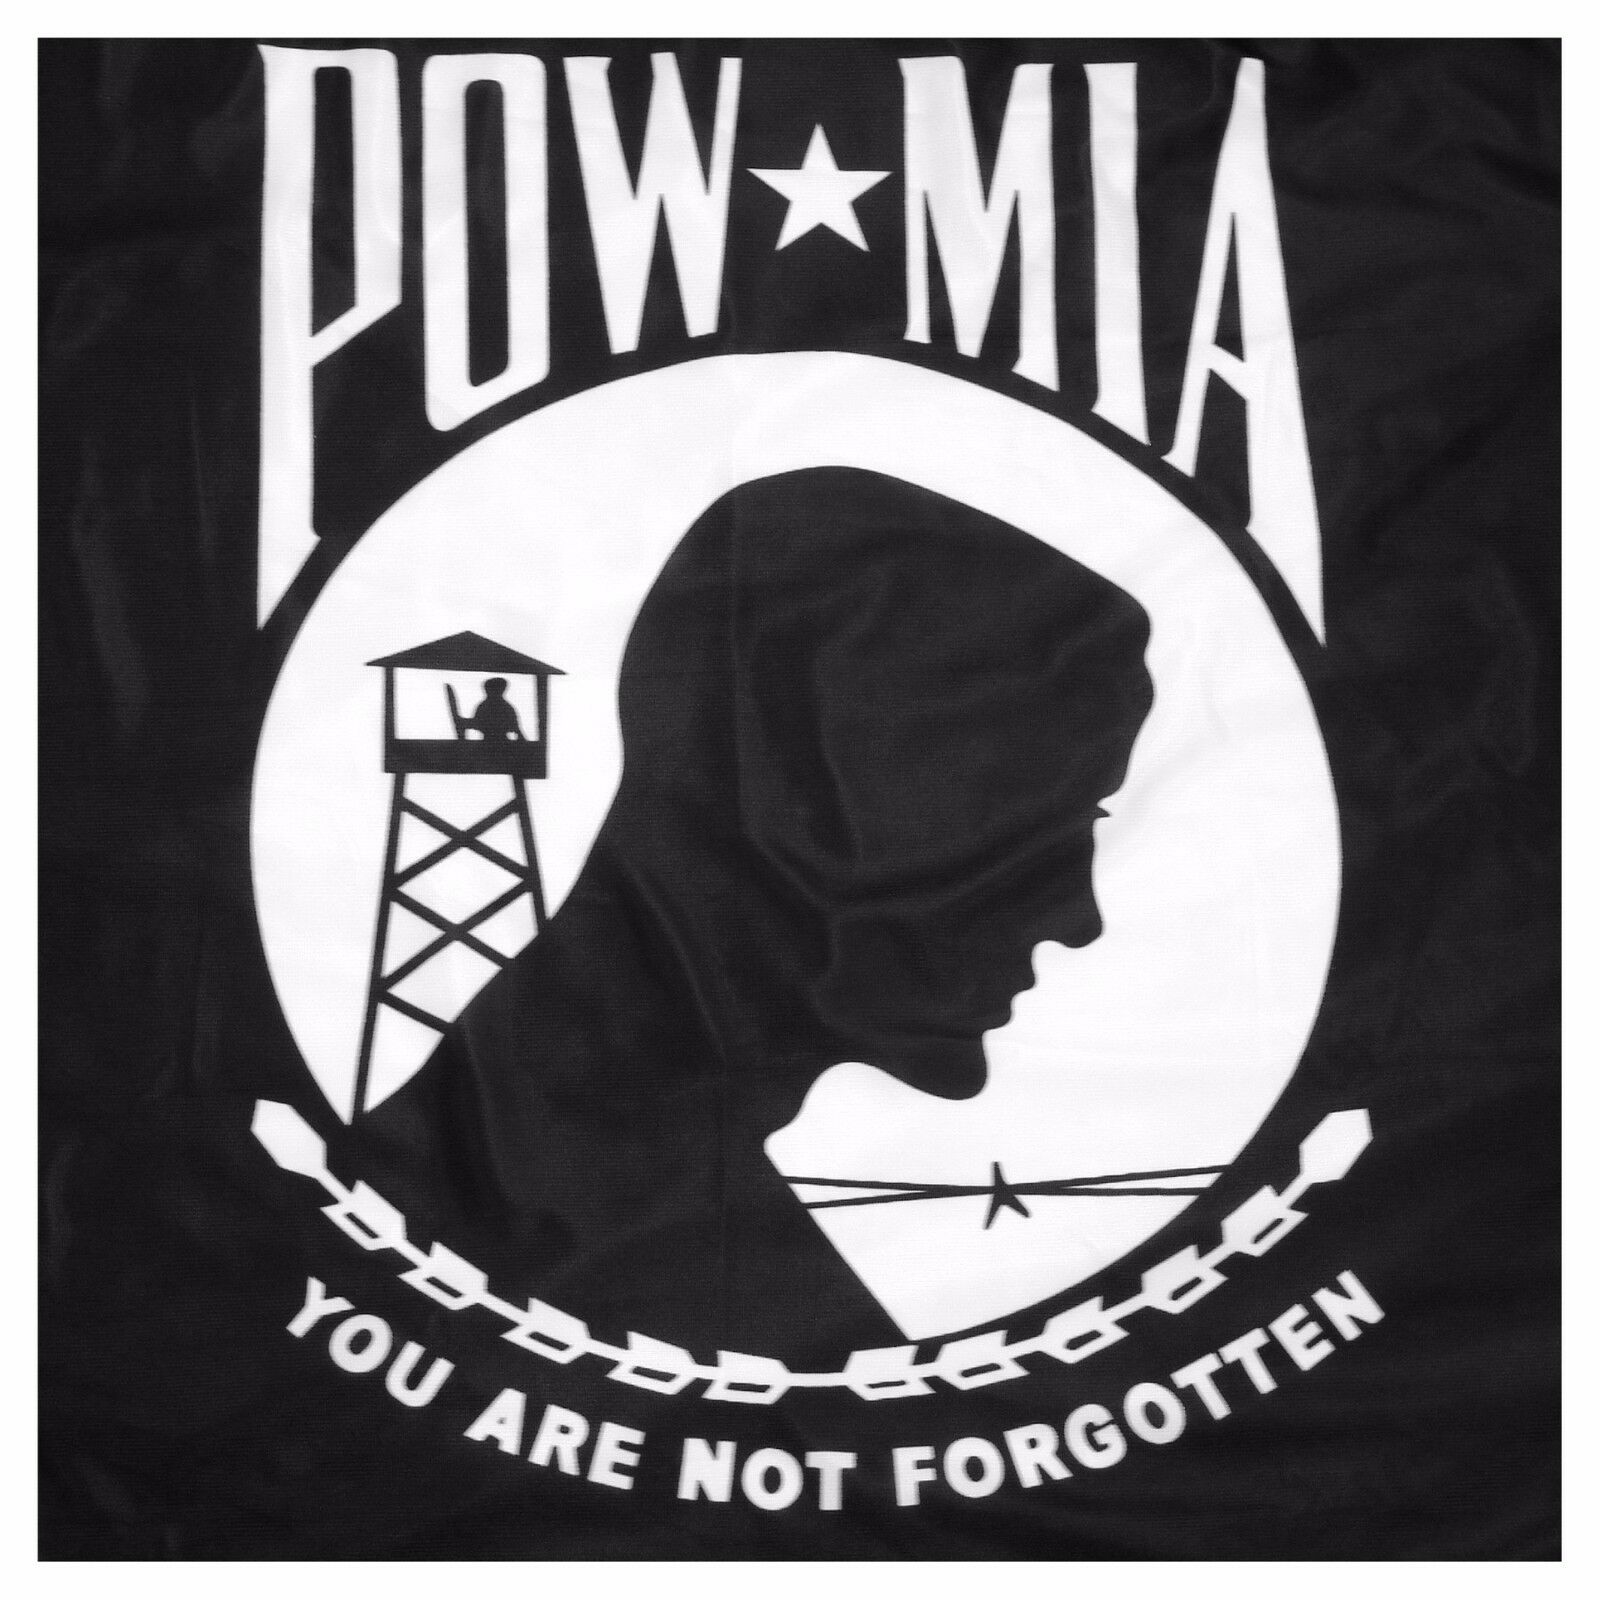 pow mia flag d s made in